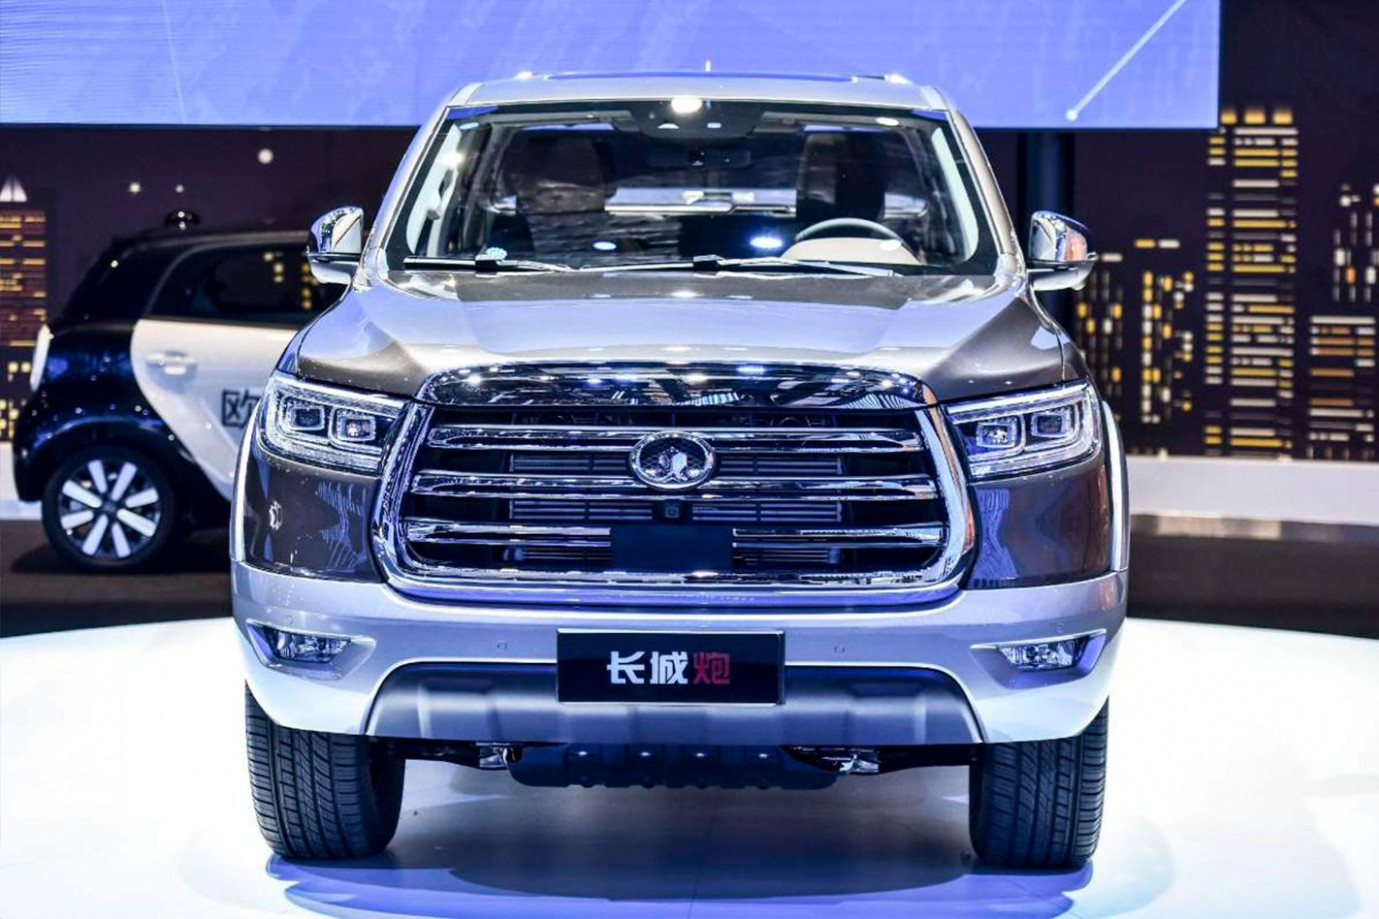 8 Great Wall Model P ute: what we know so far